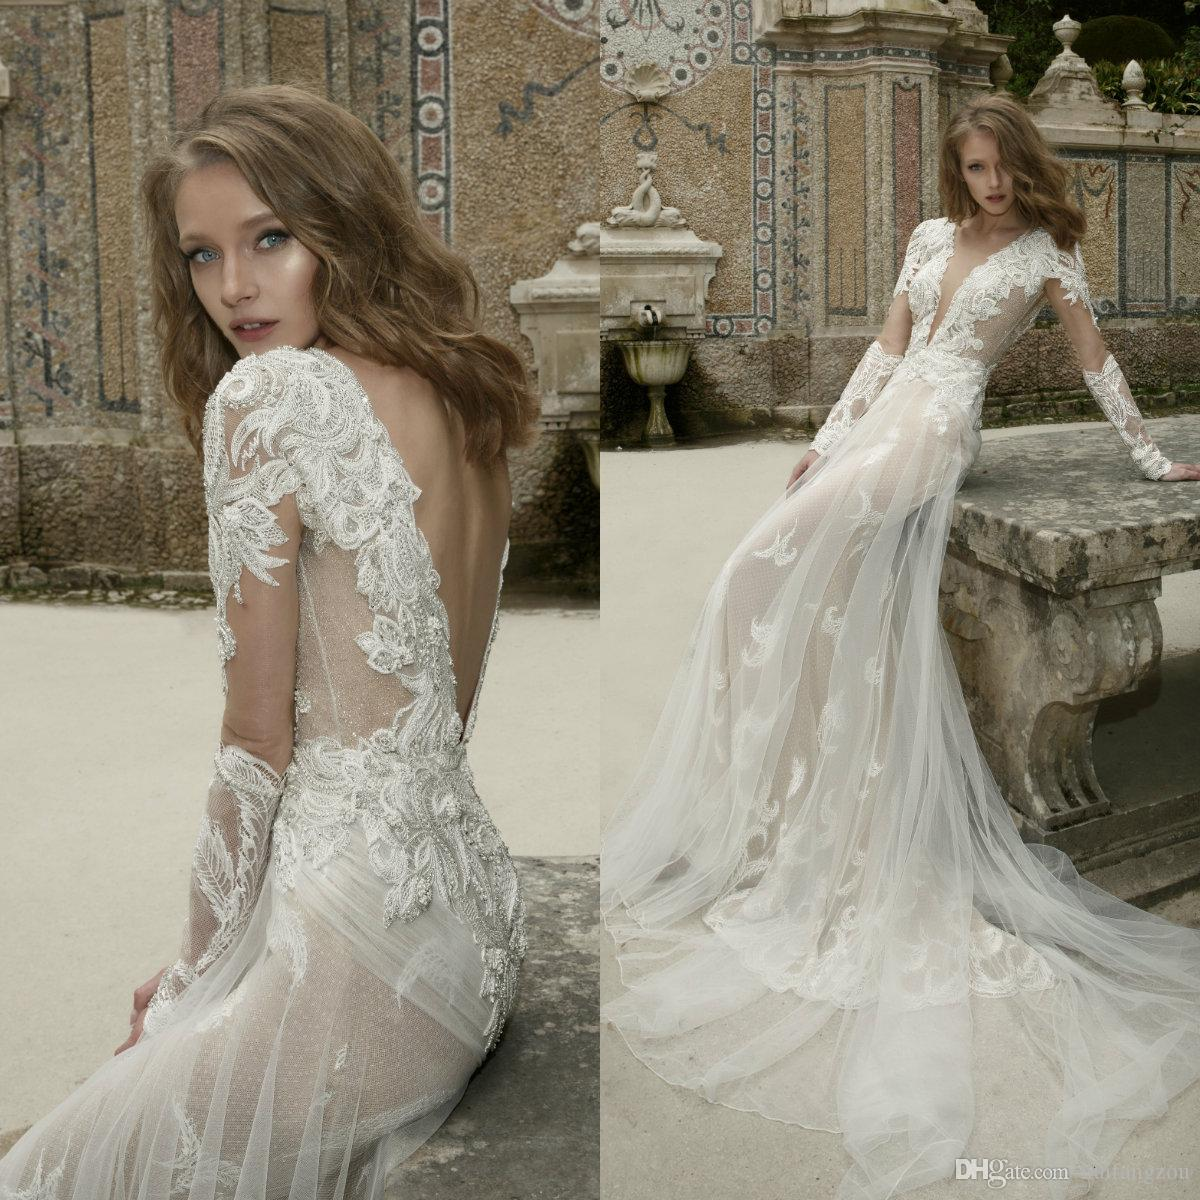 1eb920d94bb36 Discount Netta Ben Shabu 2019 Wedding Dresses Sexy Long Sleeve Appliques  Beaded Tulle Bridal Gowns Backless Designer Wedding Dress Plus Size Wedding  Dresses ...